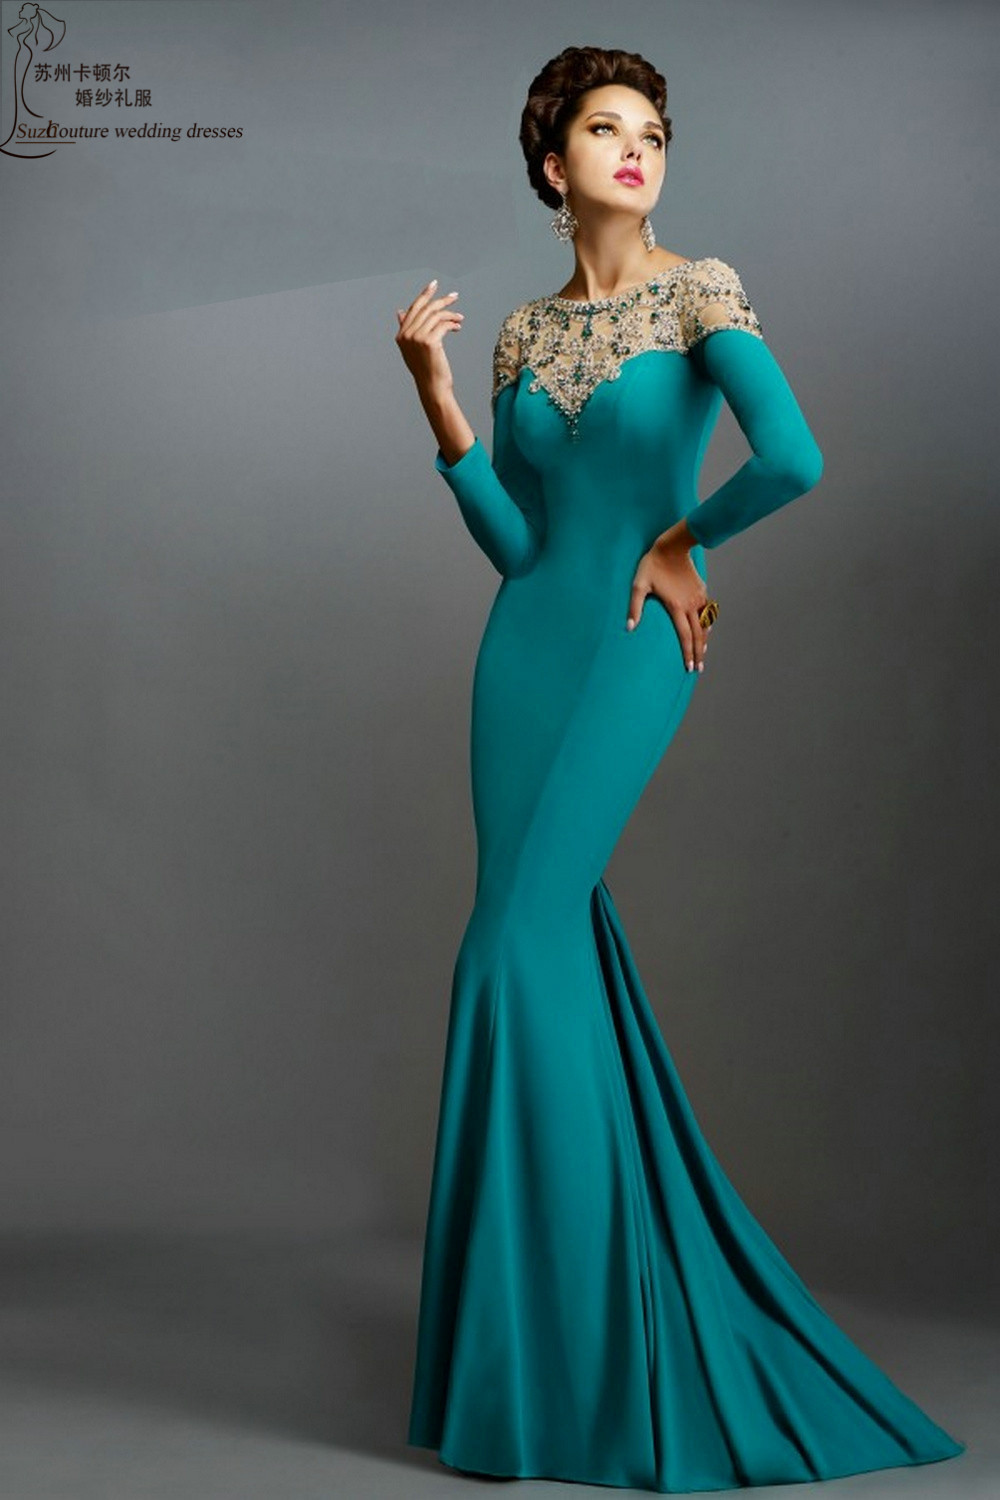 Images of Long Sleeve Long Dresses Formal - The Fashions Of Paradise